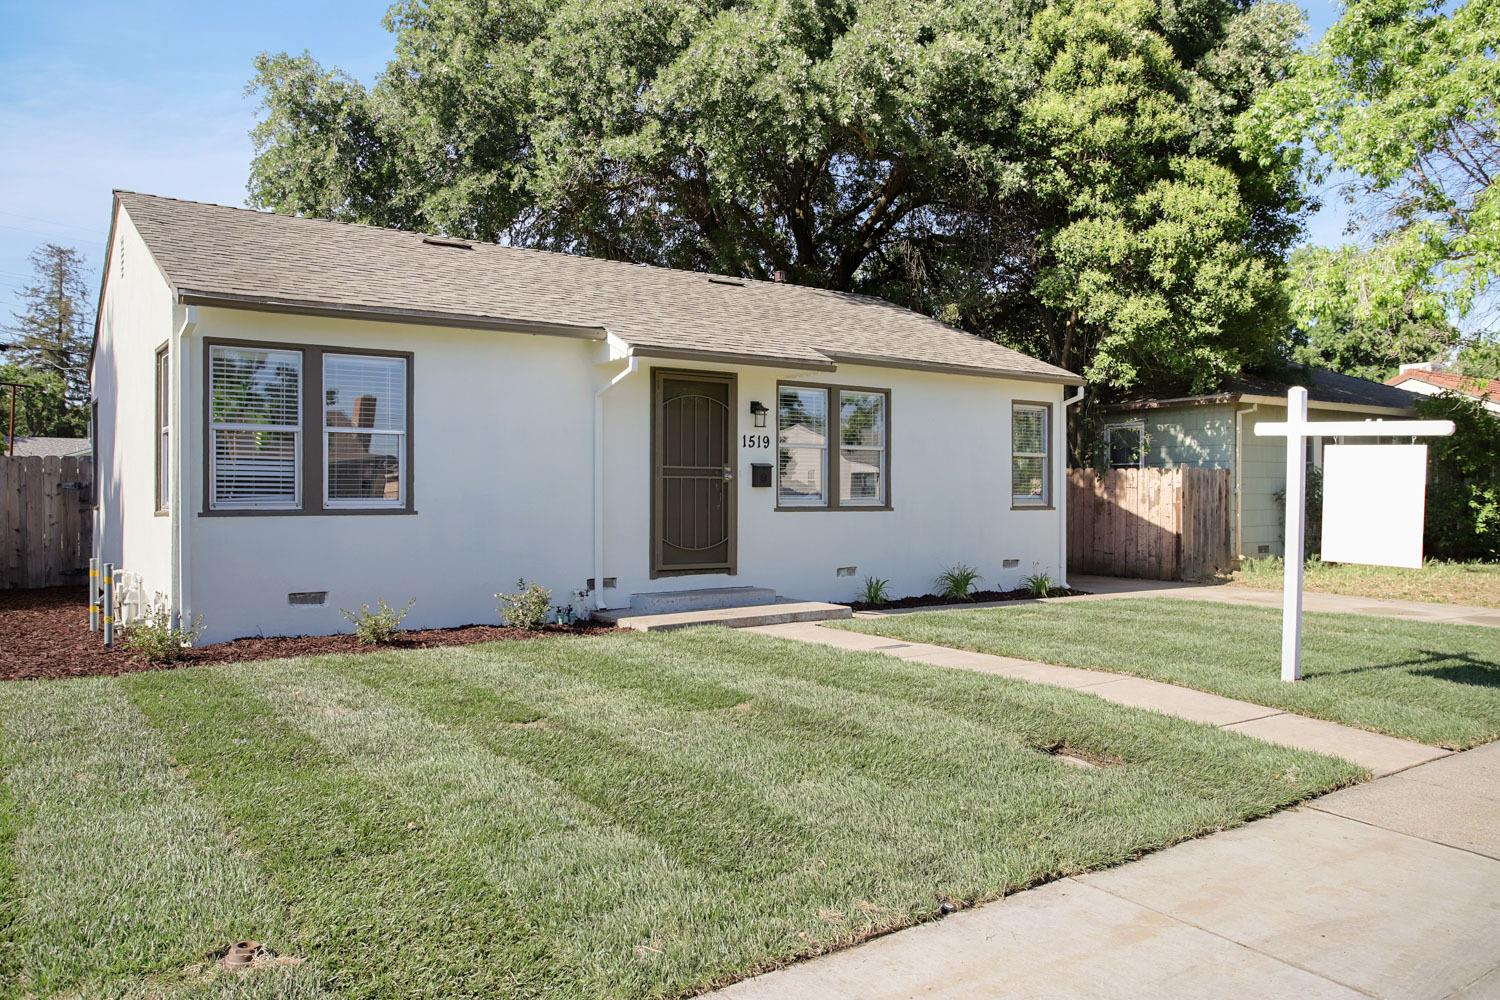 Photo of 1519 Oxford Way, Stockton, CA 95204